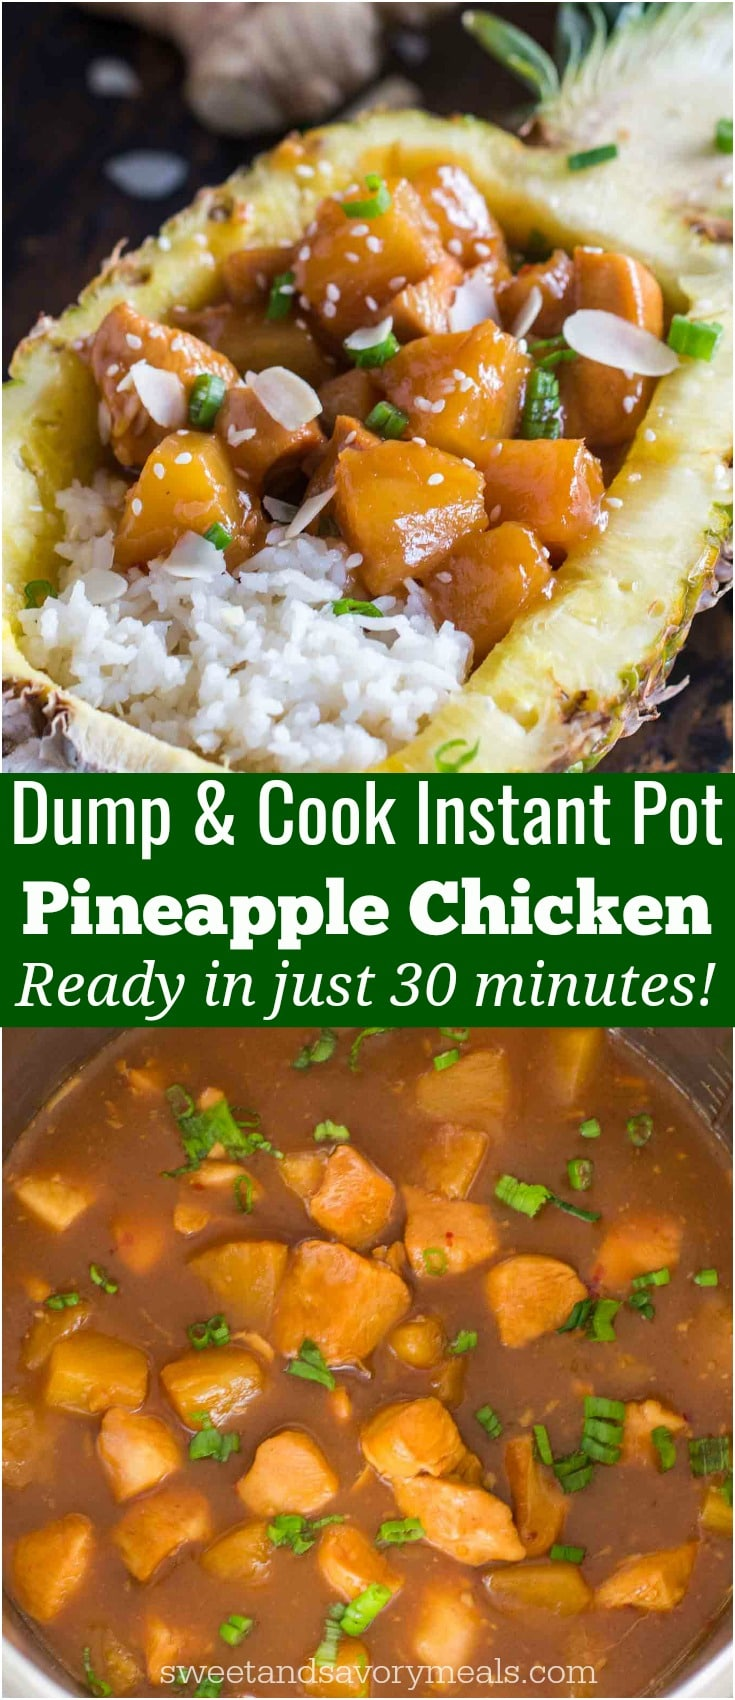 Pressure cooker pineapple chicken photo.